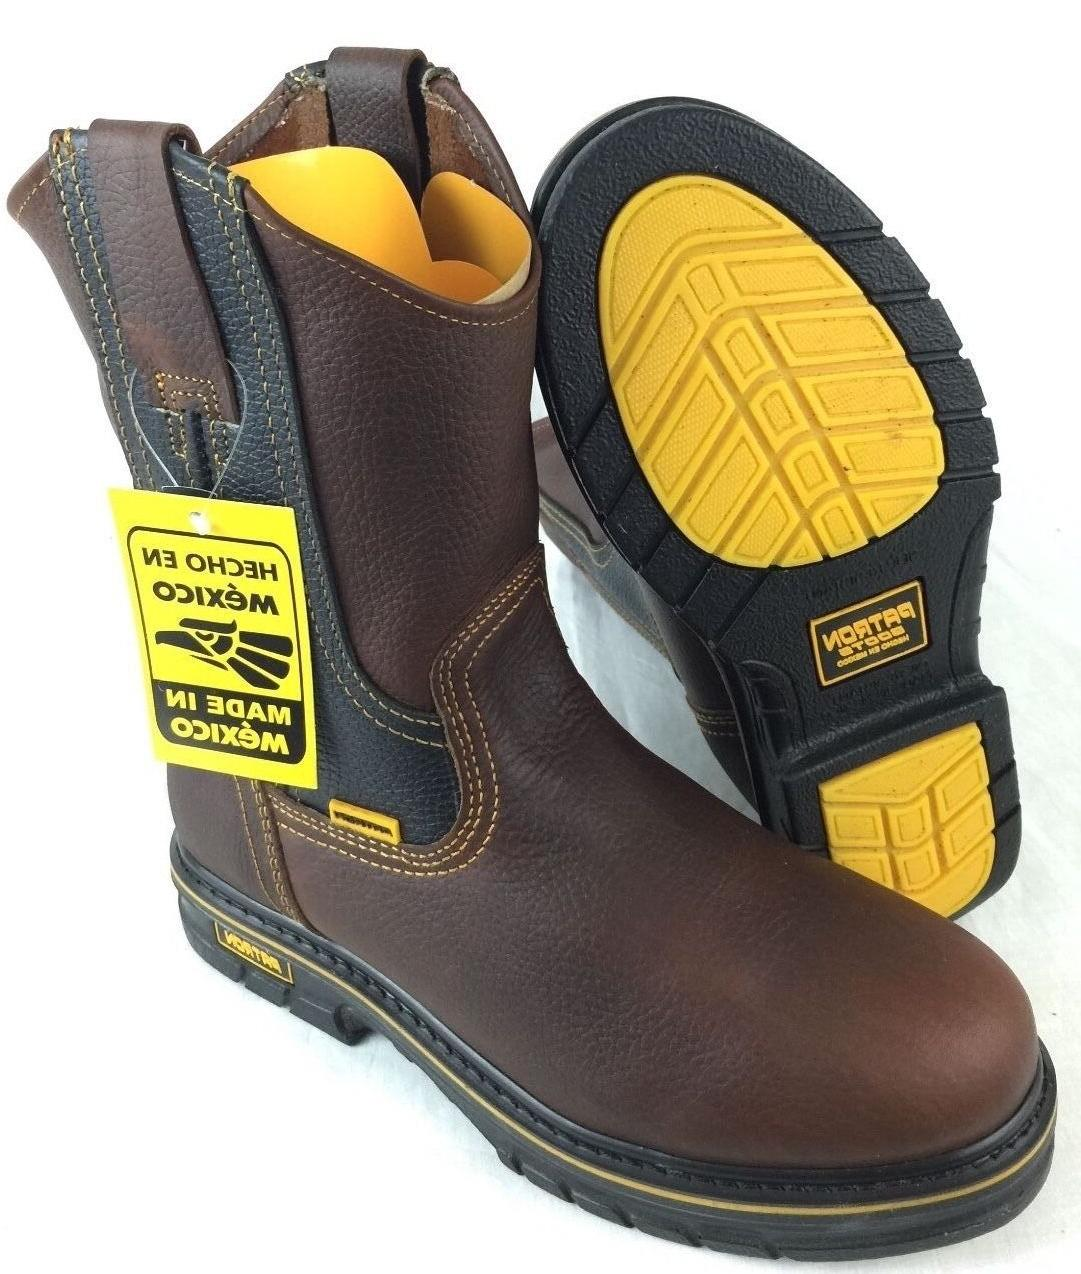 MEN'S WORK BOOTS GENUINE LEATHER BROWN COLOR WESTERN COWBOY